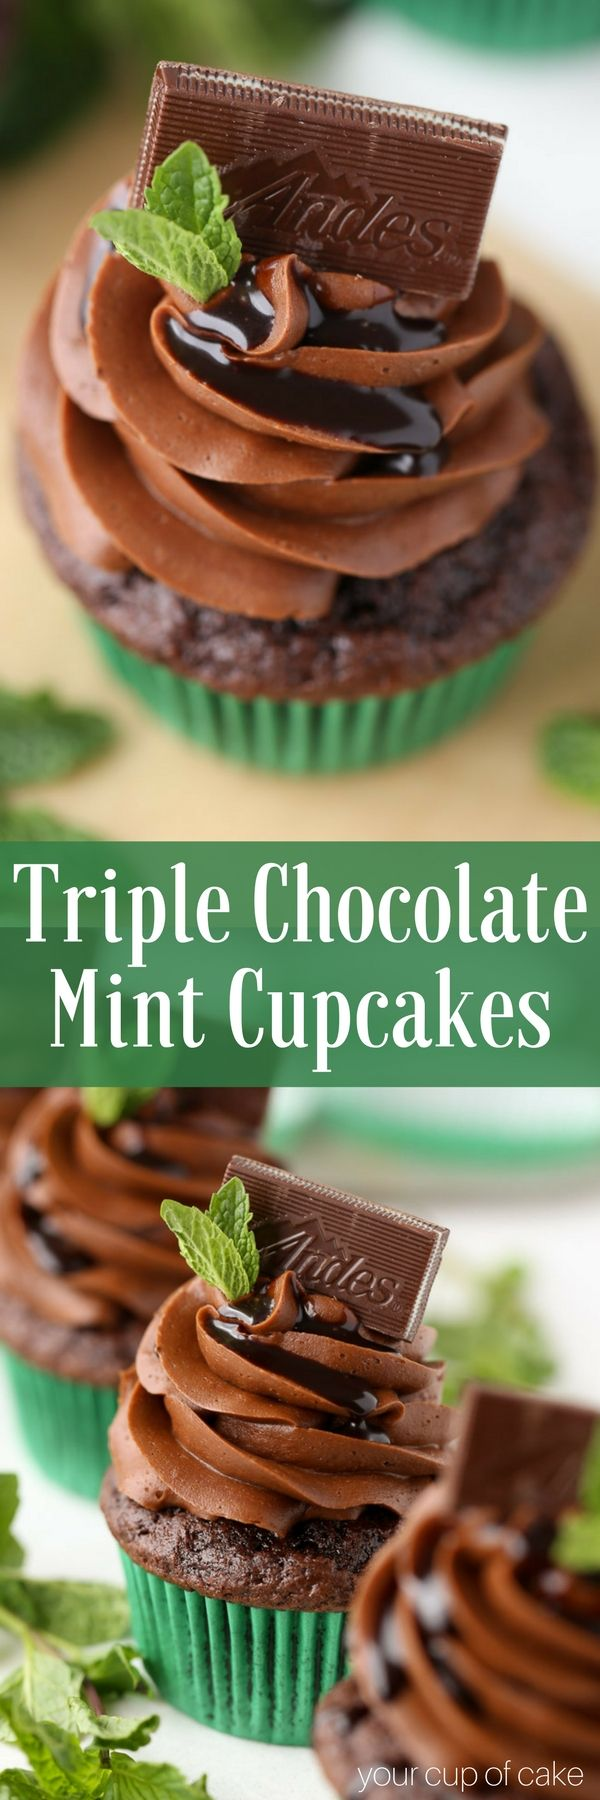 Triple Chocolate Mint Cupcakes with Andes Mints! Perfect St. Patrick's Day Cupcakes!